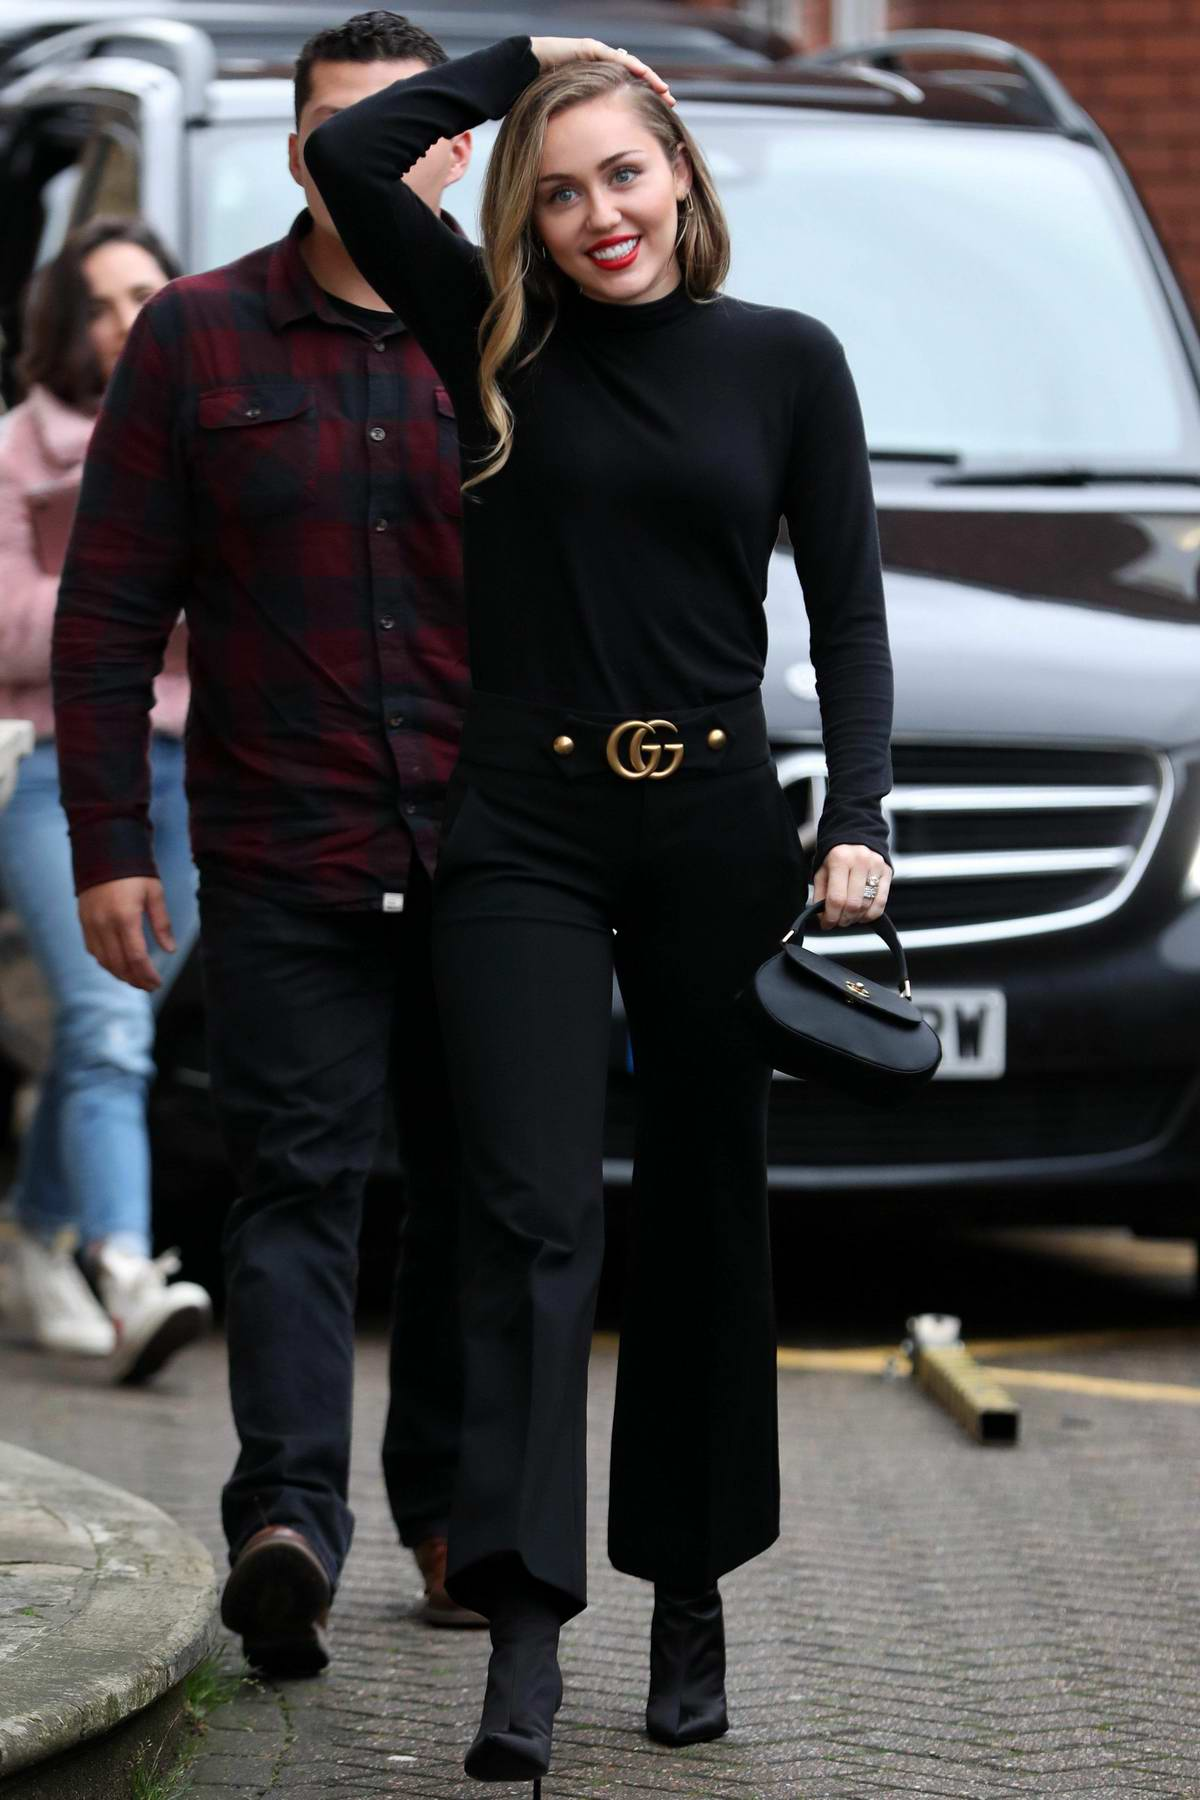 Miley Cyrus is all smiles as she greets her fans while out in an all black ensemble in London, UK